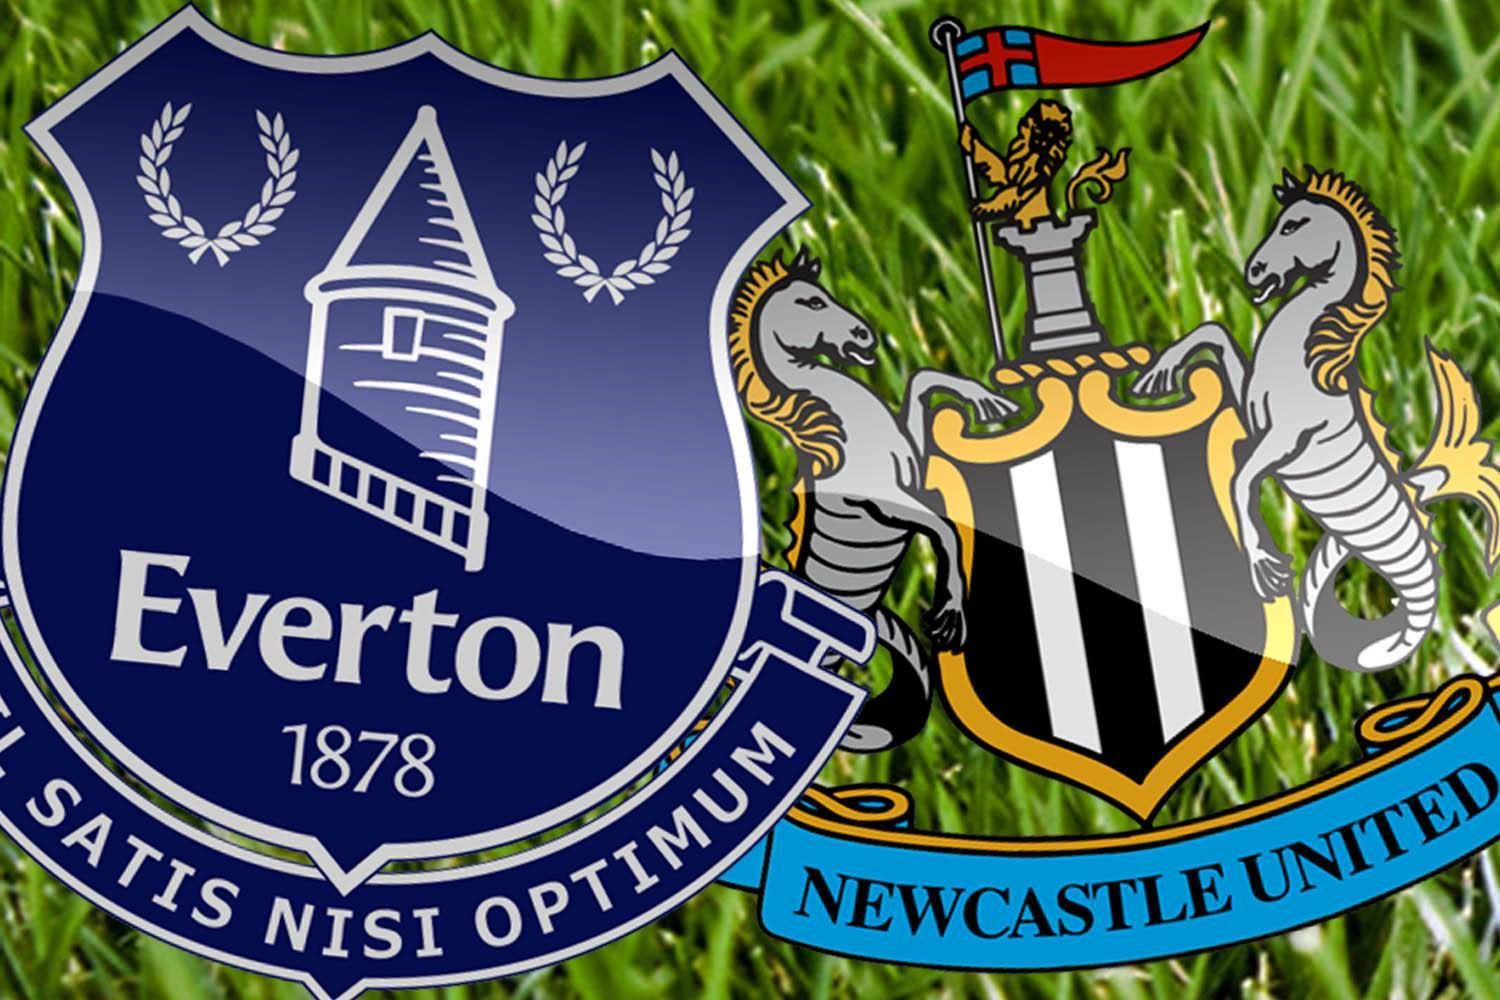 Everton vs Newcastle LIVE SCORE: Latest updates and commentary for the Premier League match